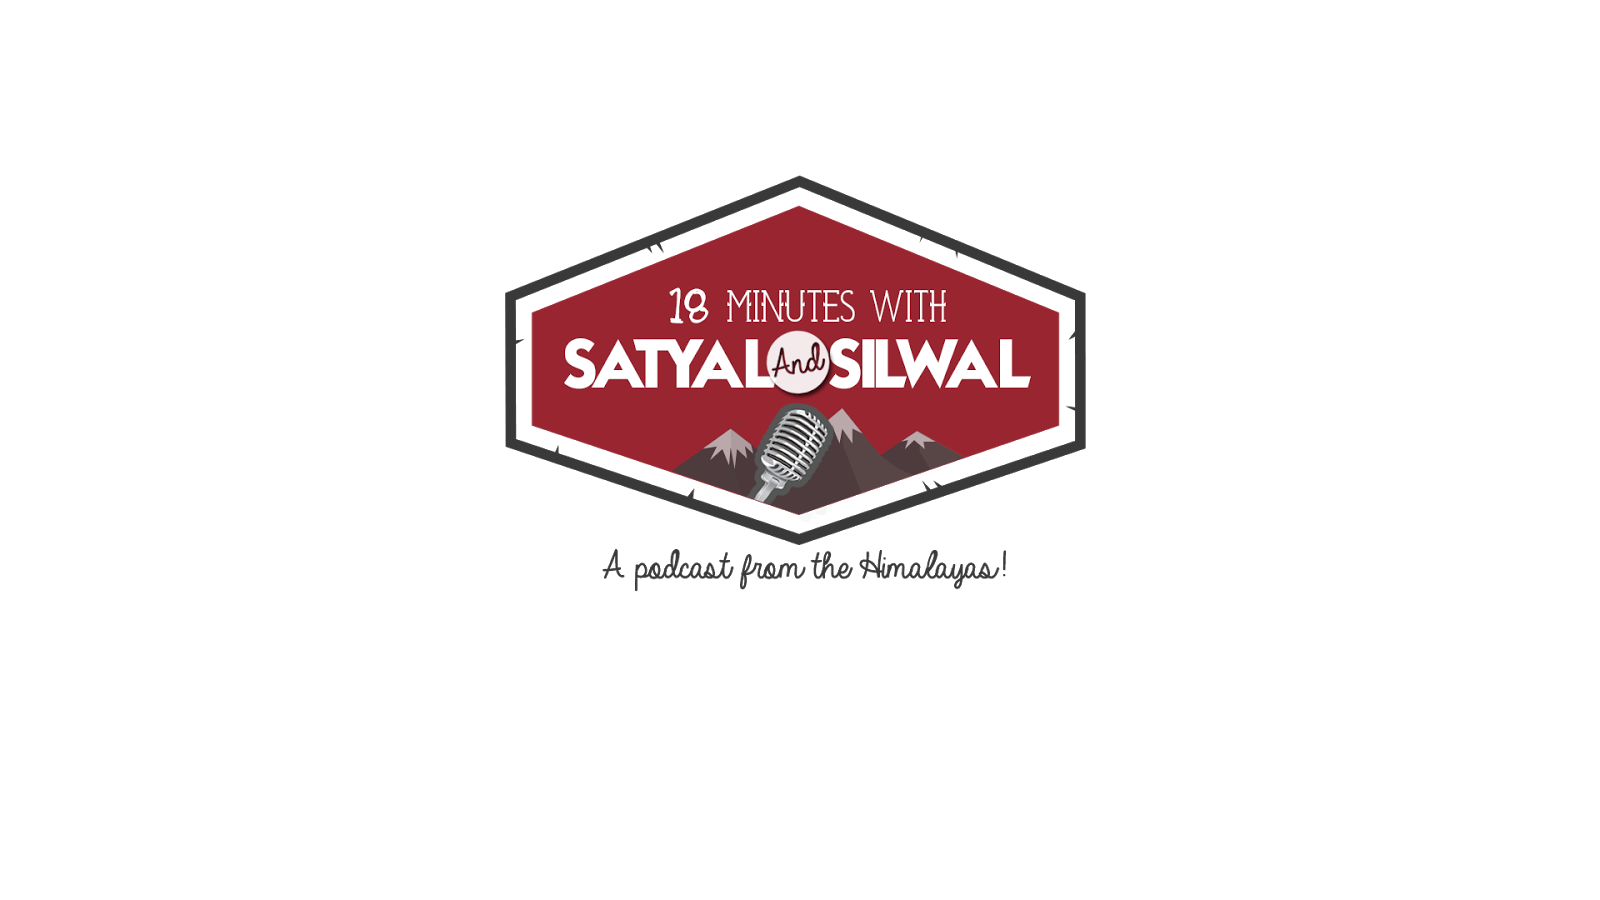 18 Minutes with Satyal and Silwal